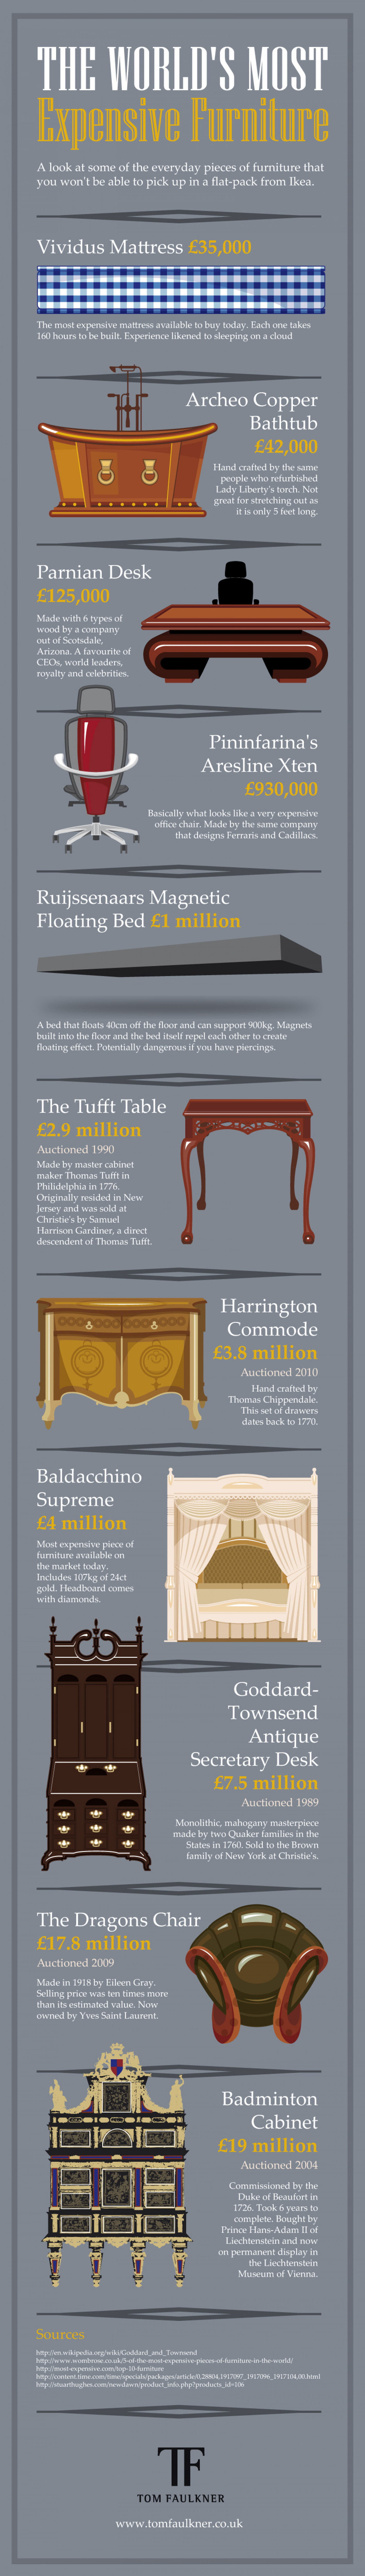 The World's Most Expensive Custom Furniture Infographic